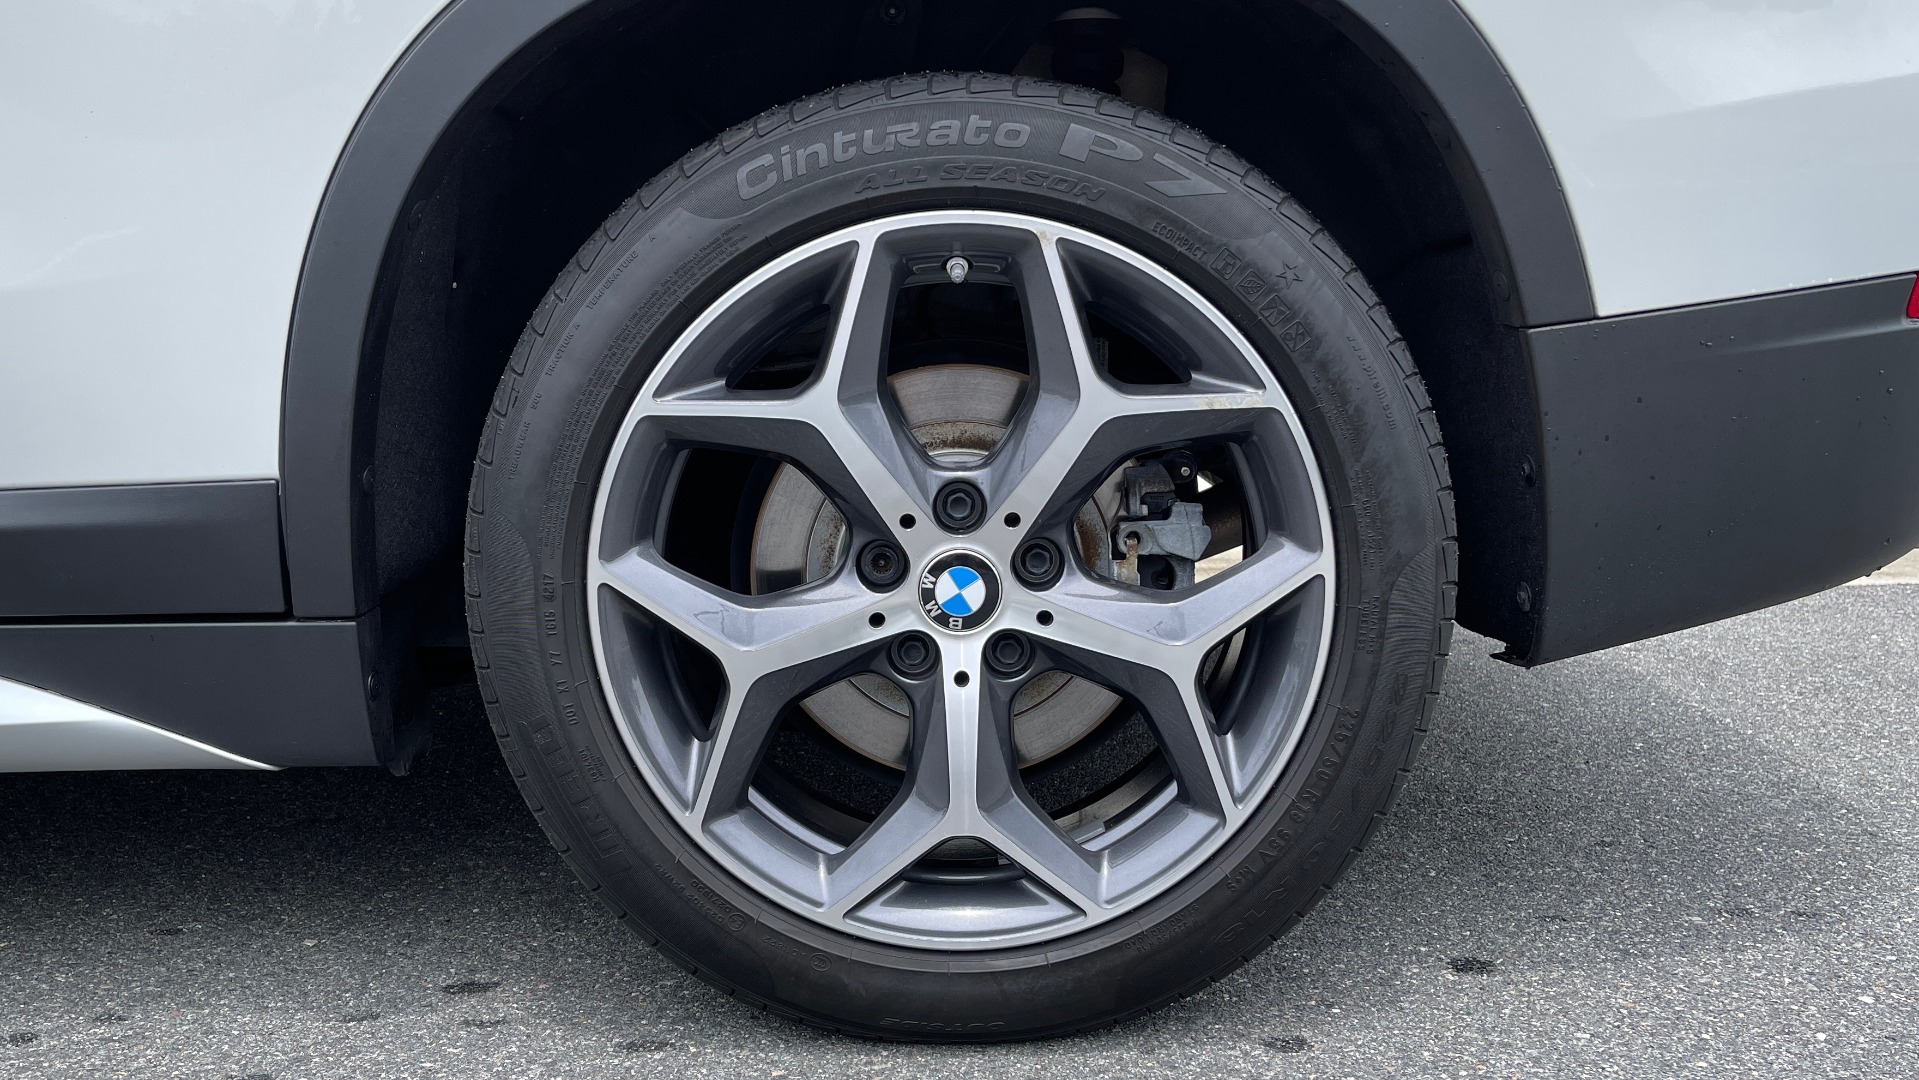 Used 2018 BMW X1 XDRIVE28I / CONV PKG / PANO-ROOF / HTD STS / PARK ASST / REARVIEW for sale $30,995 at Formula Imports in Charlotte NC 28227 87